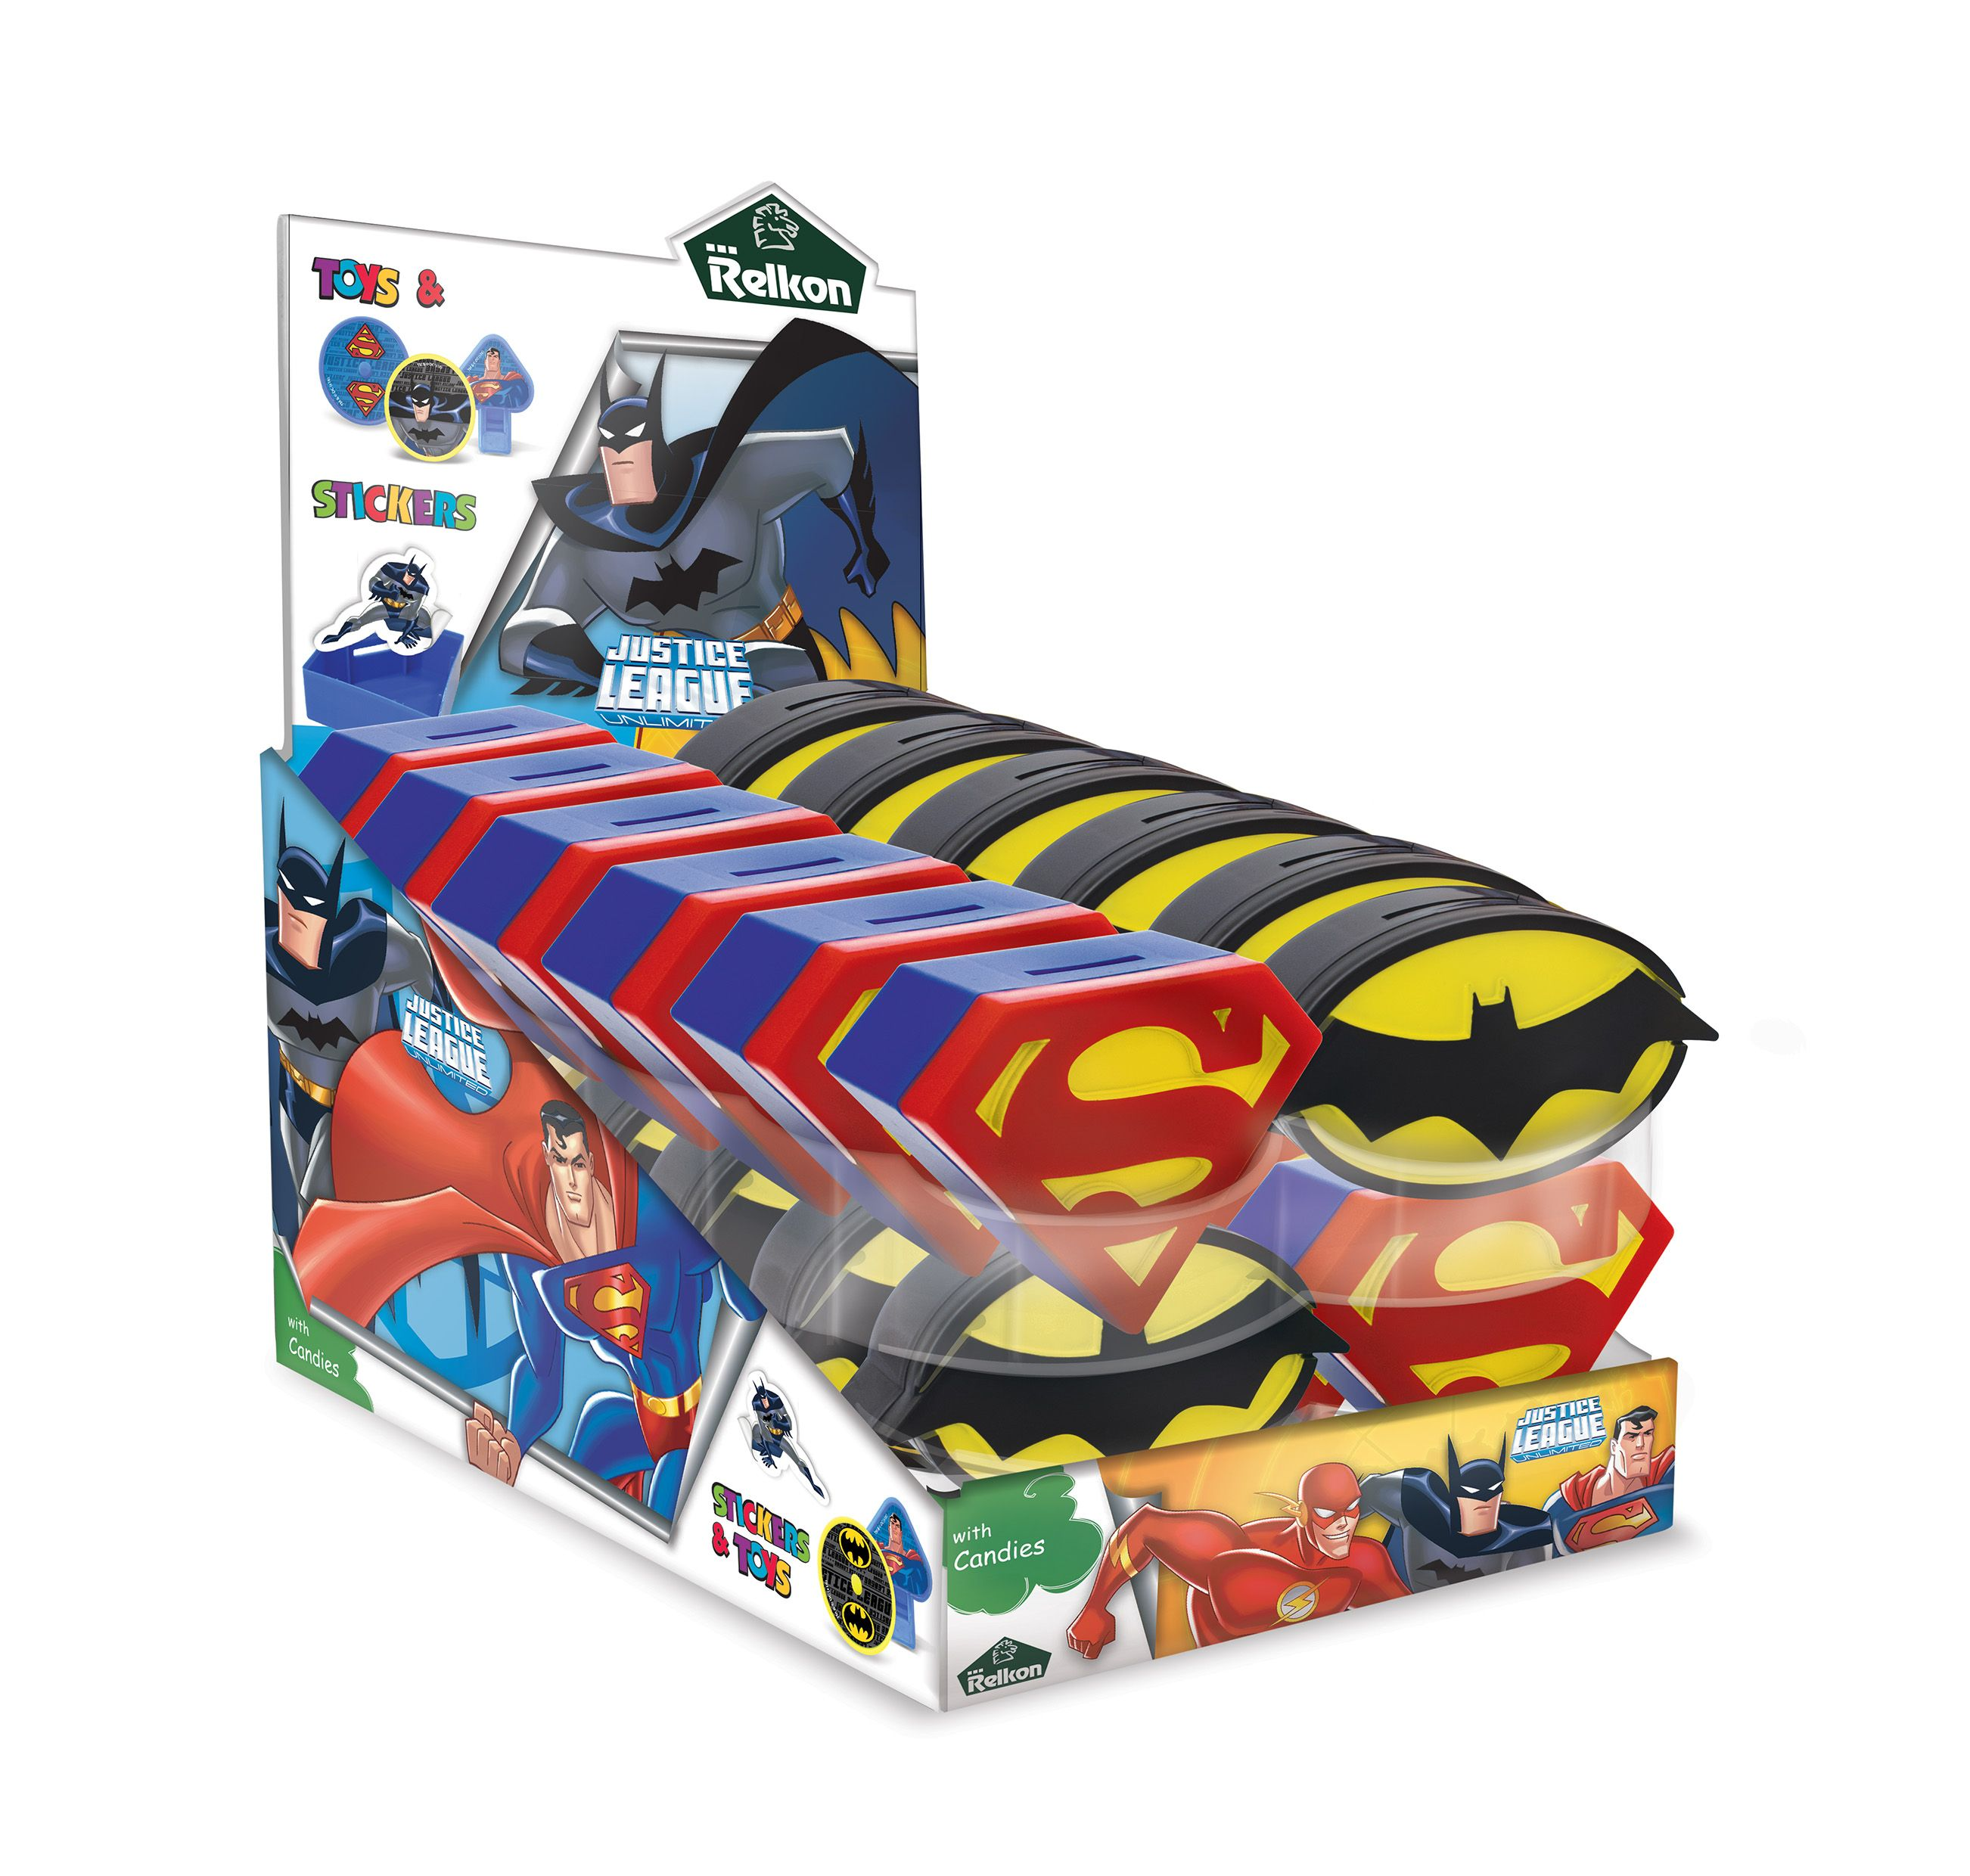 Justice League Food and Beverage coin banks with candy